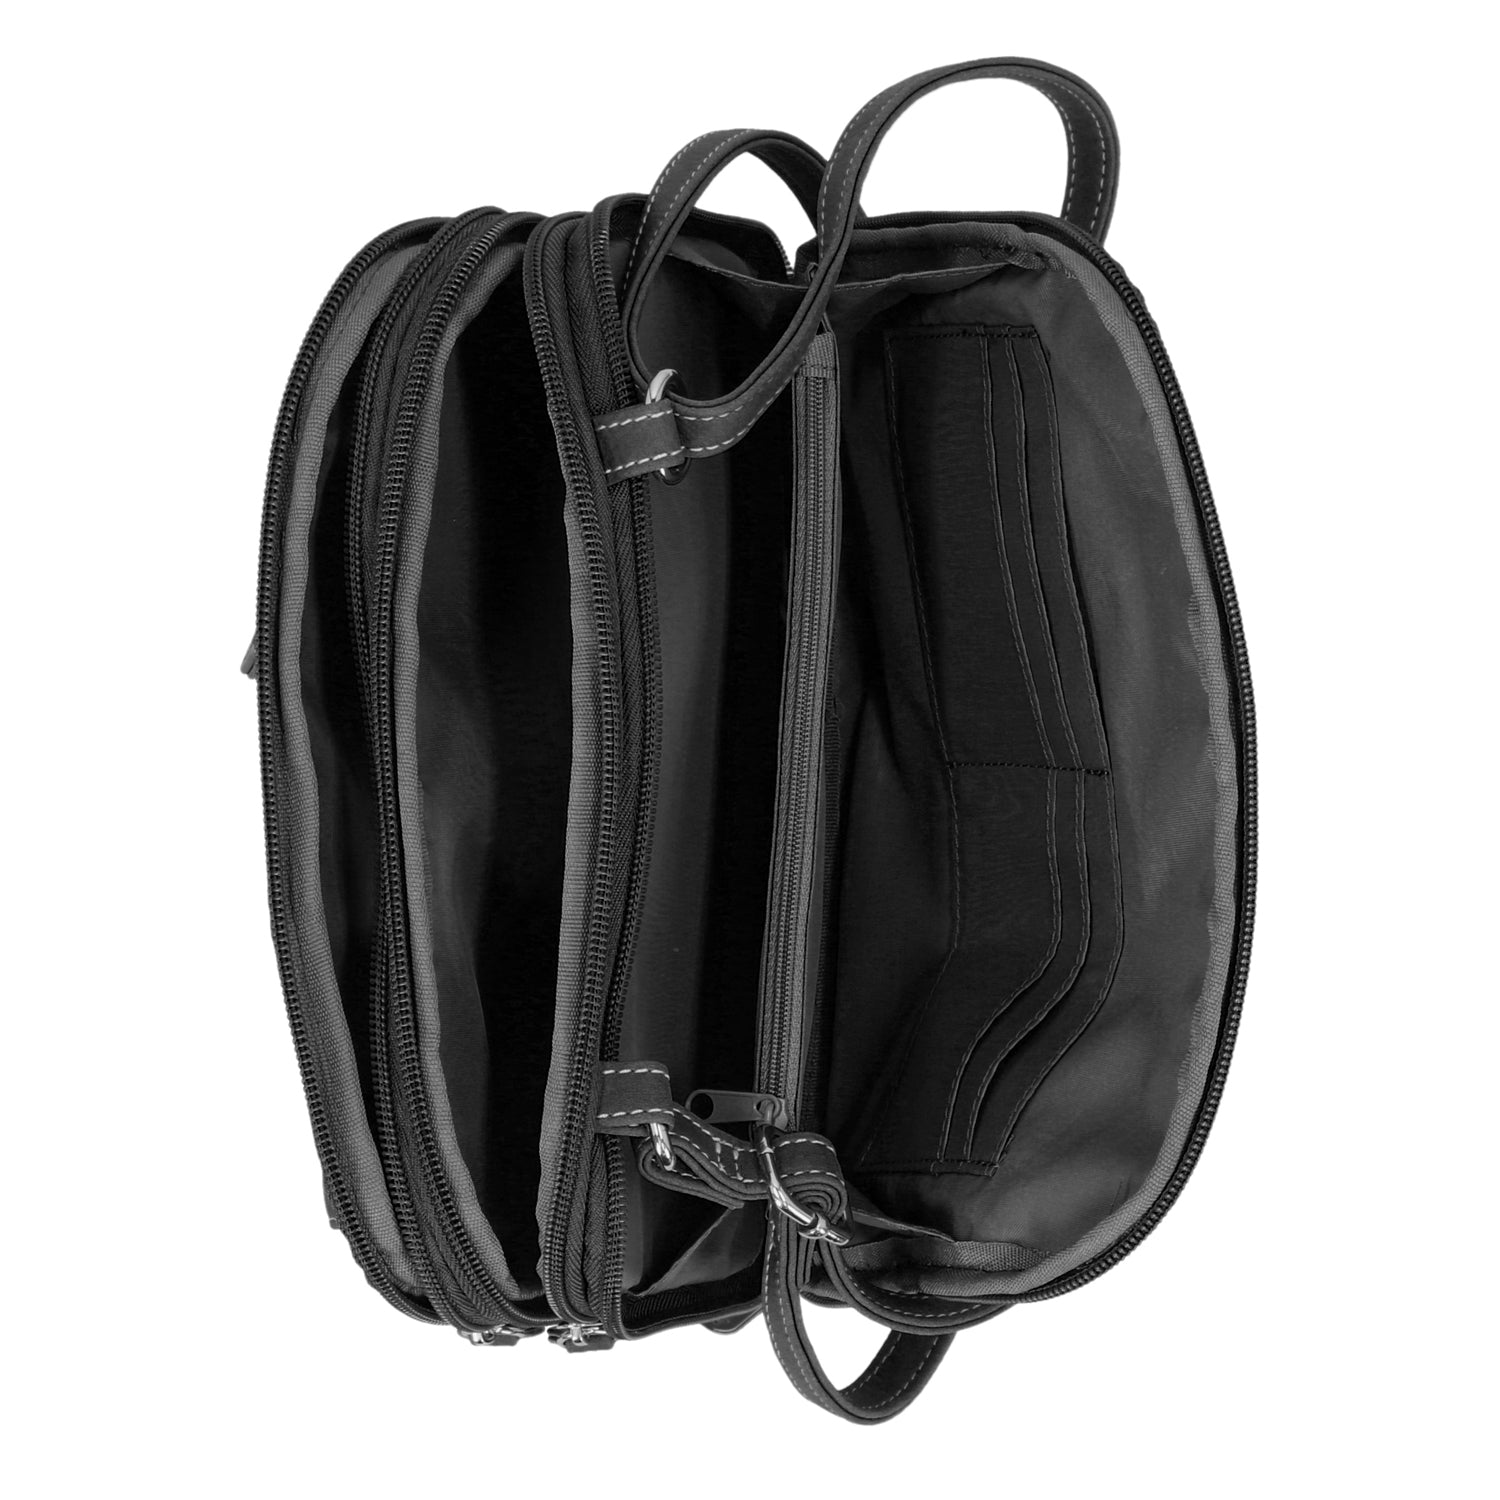 Zippy Triple Compartment Crossbody Bag (Black)